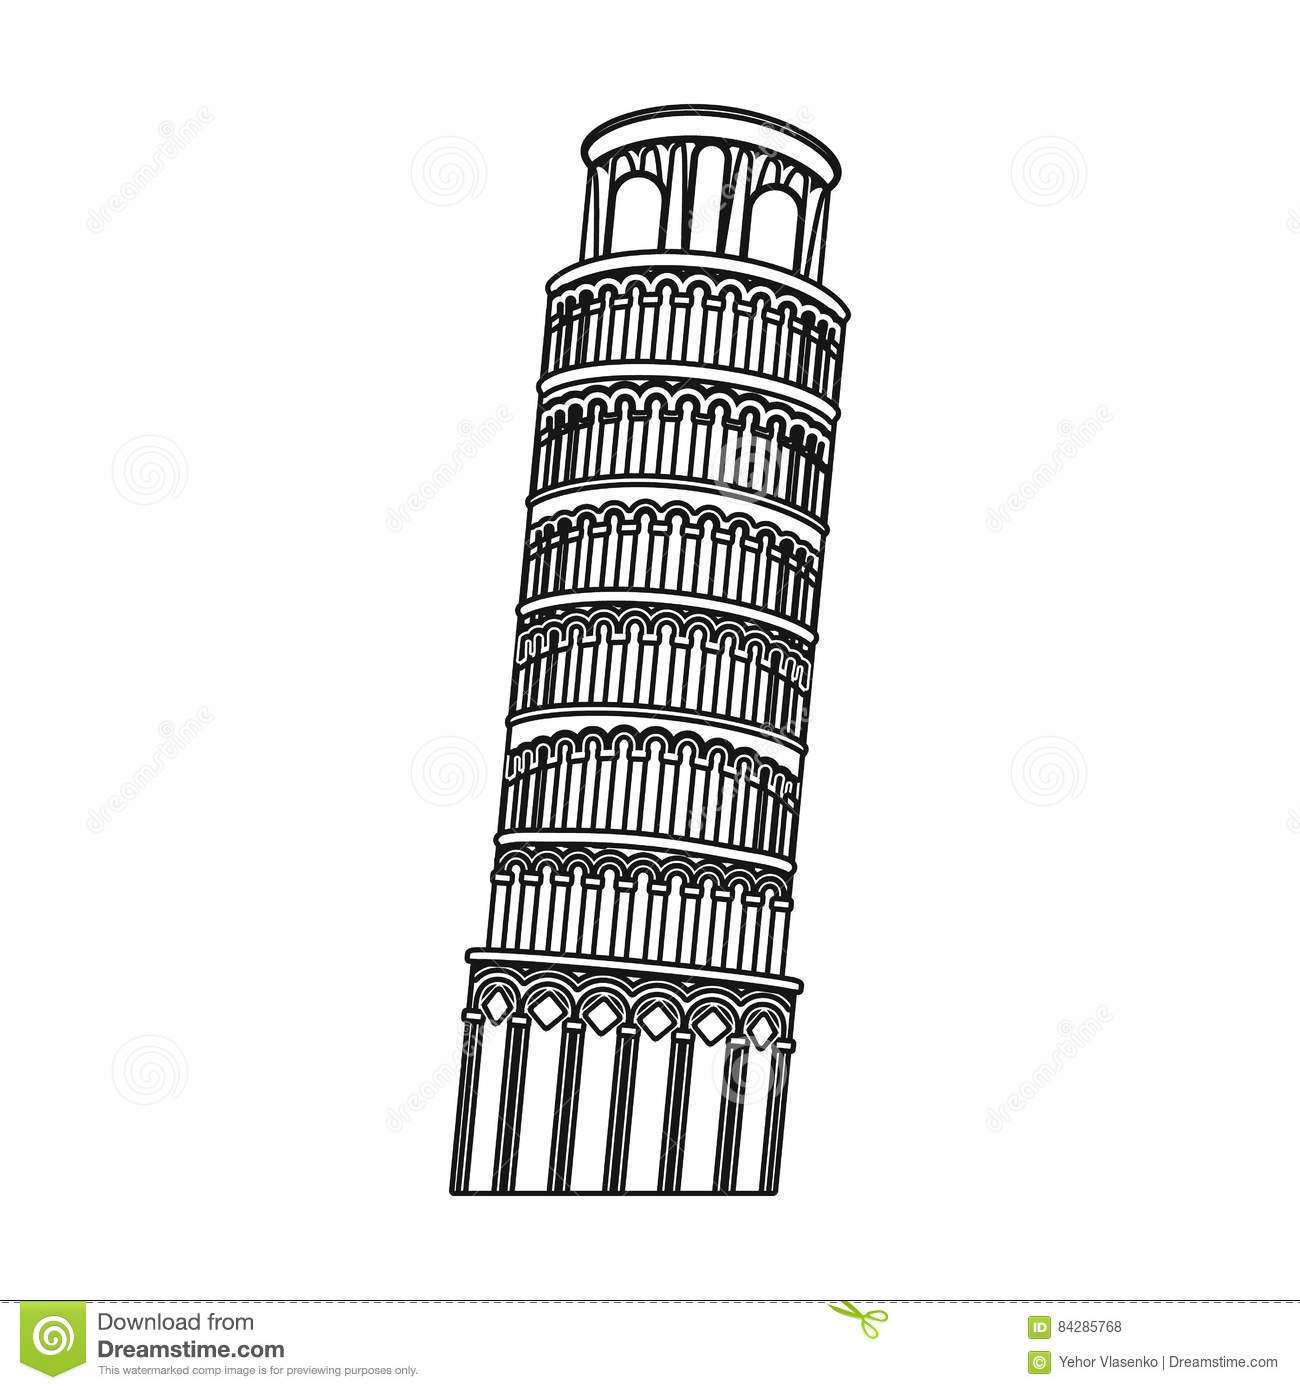 Tower of pisa in italy icon in outline style isolated on white background co - Lego architecture tour de pise ...